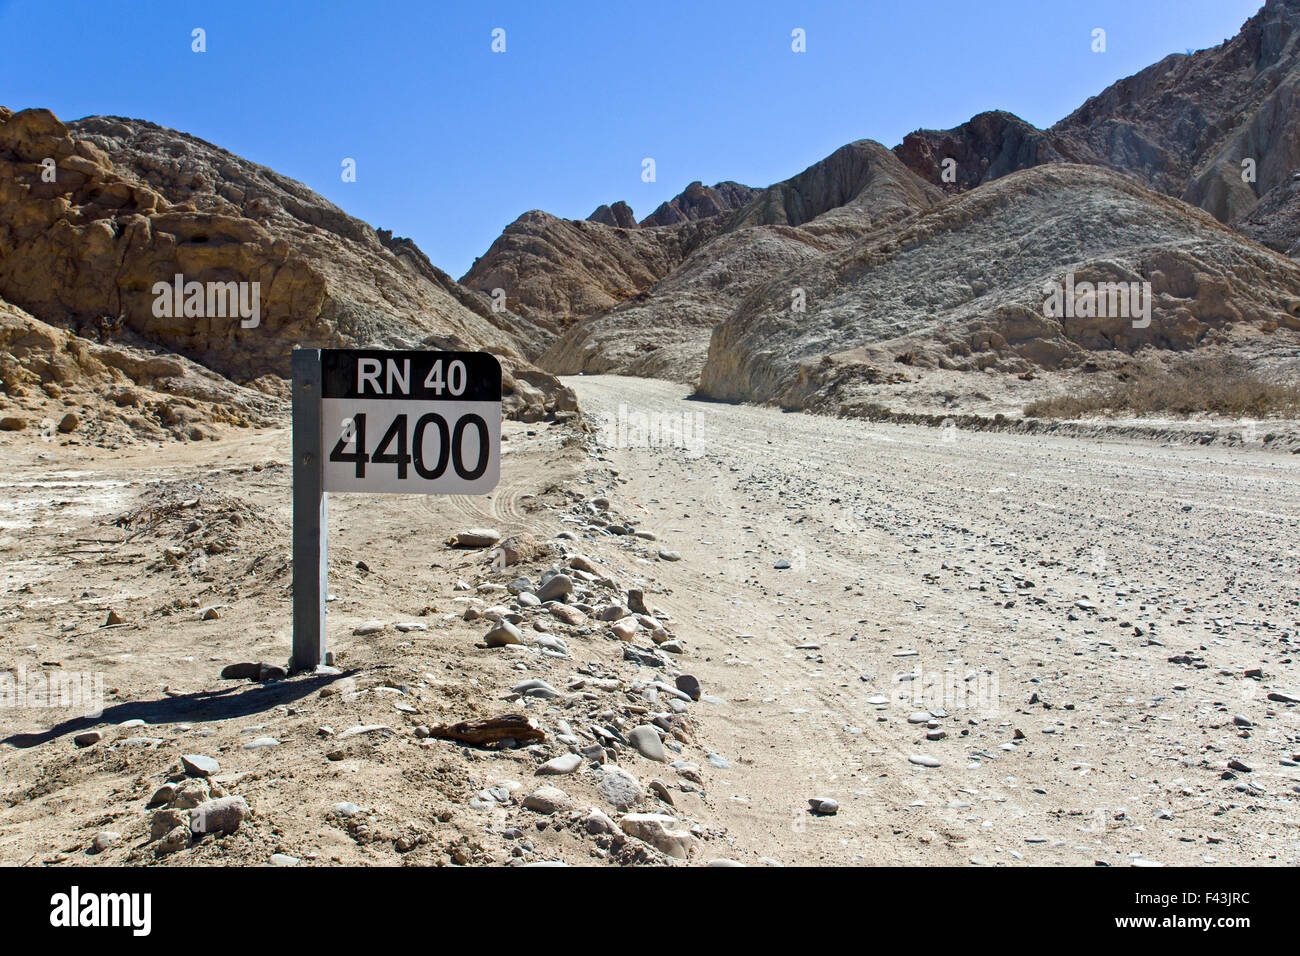 A street sign of the famous Ruta 40 in northern Argentina - Stock Image